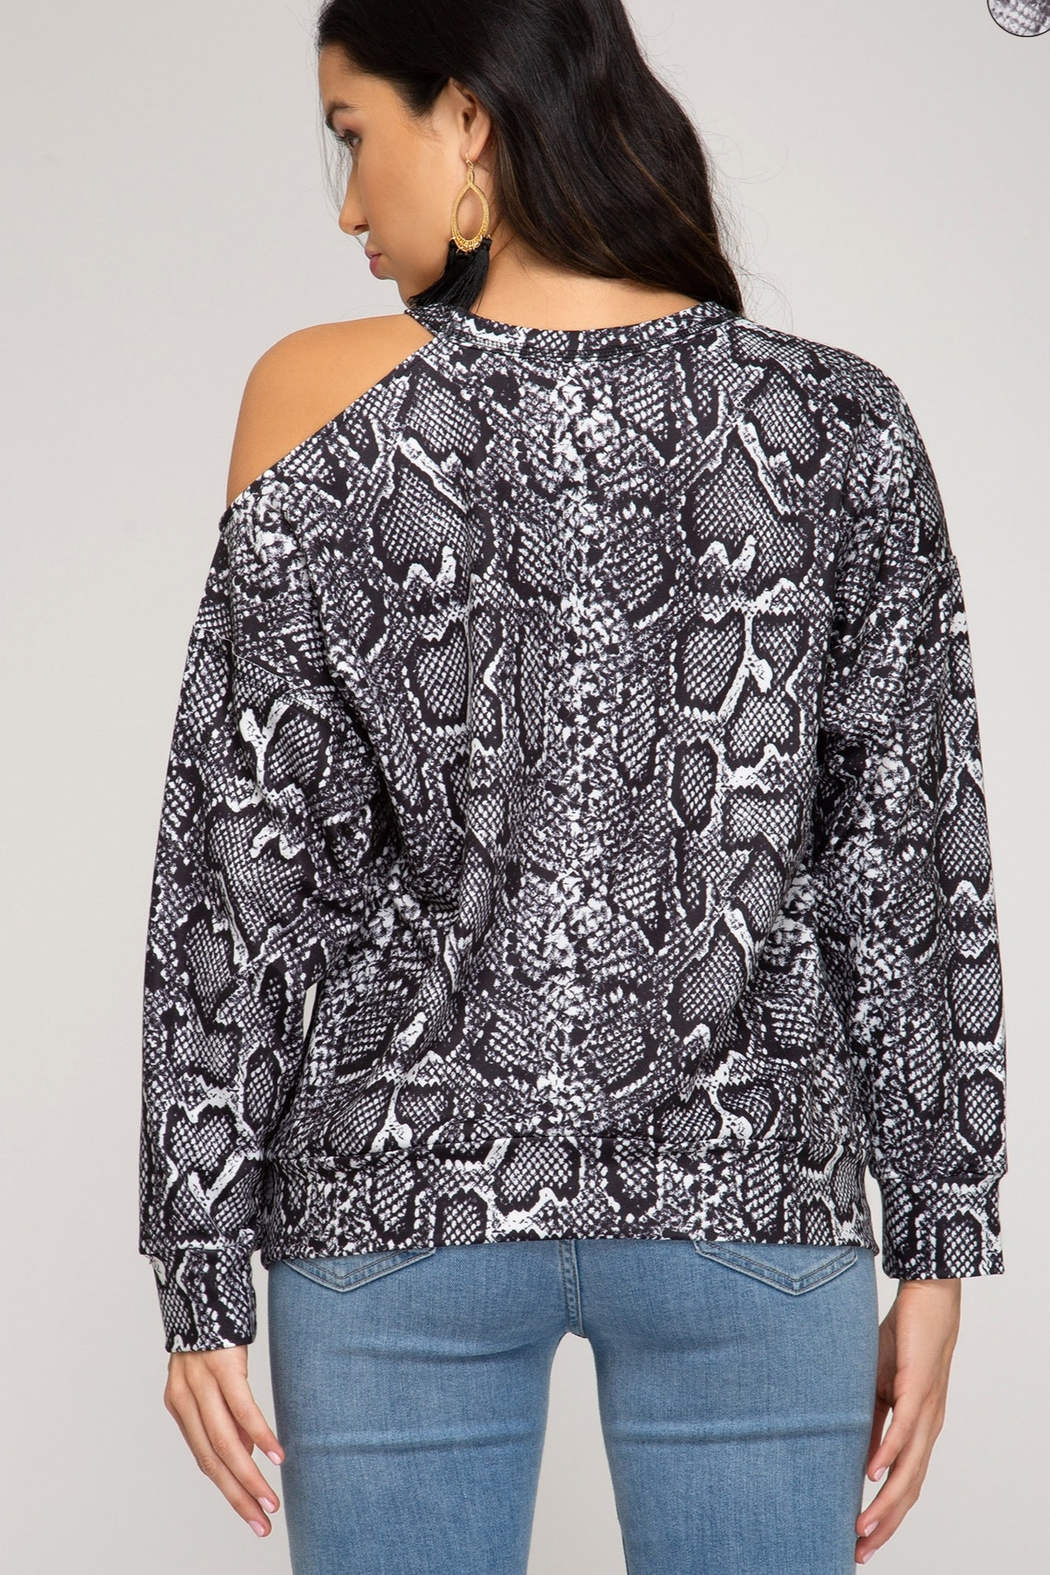 She and Sky LONG SLEEVE REPTILE PRINTED TOP - Side Cropped Image